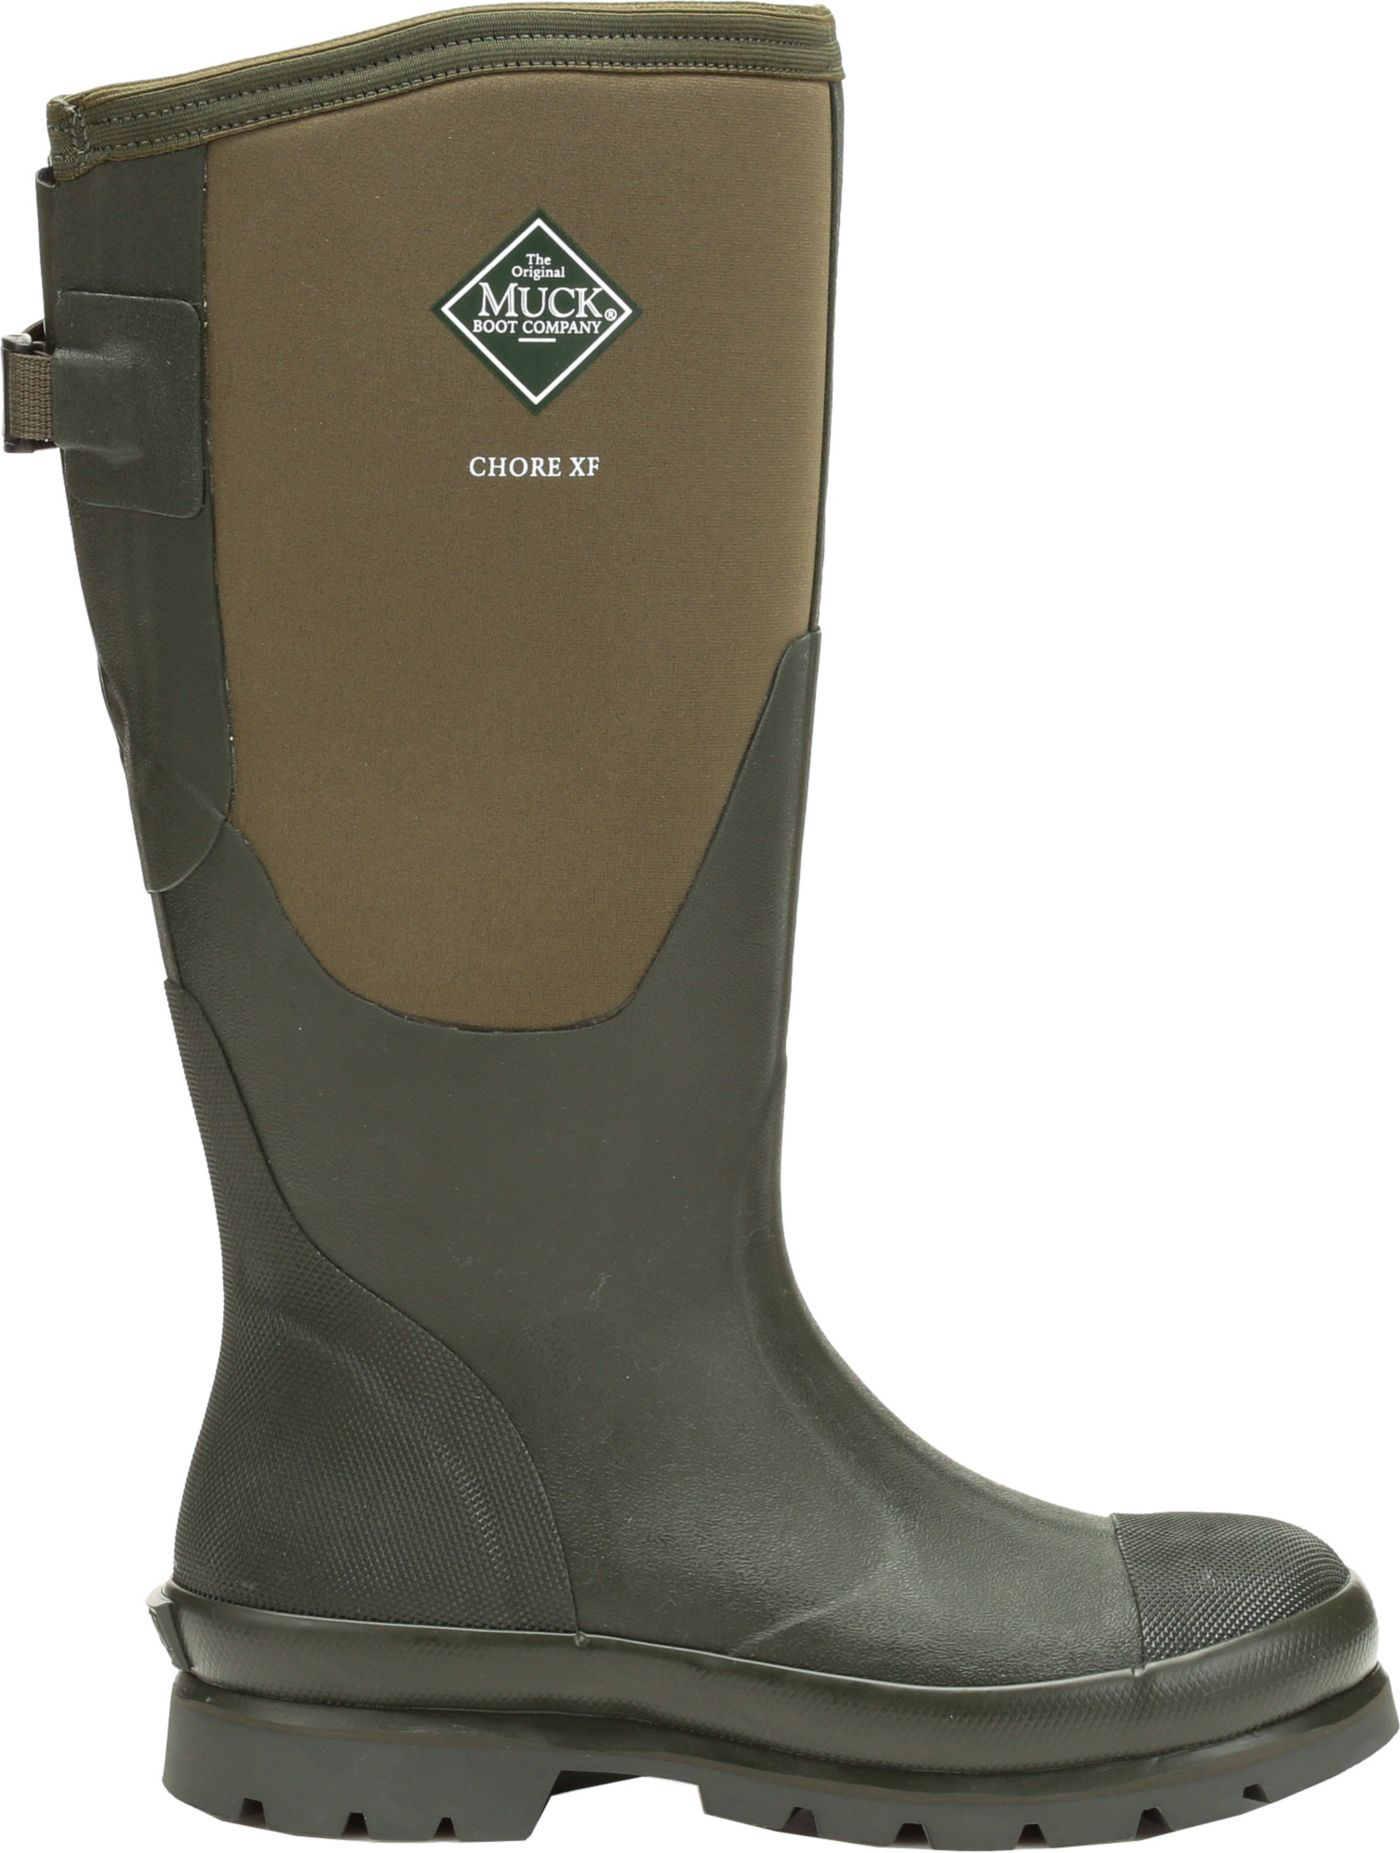 Muck Boots Women's Chore Extended Fit Waterproof Work Boots